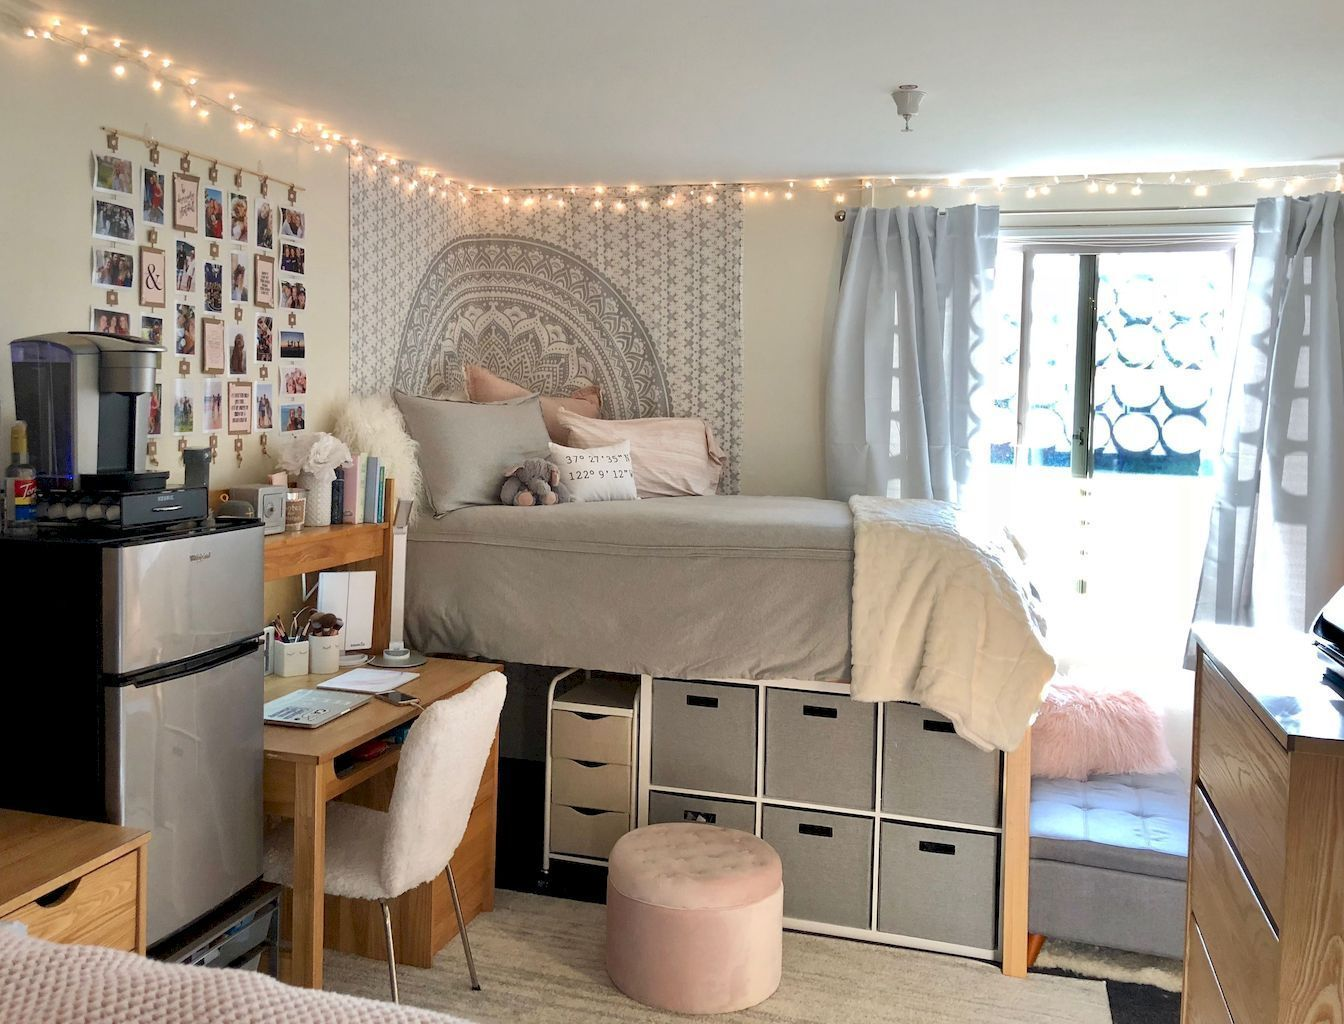 46 clever dorm room organizing storage ideas on a budget images